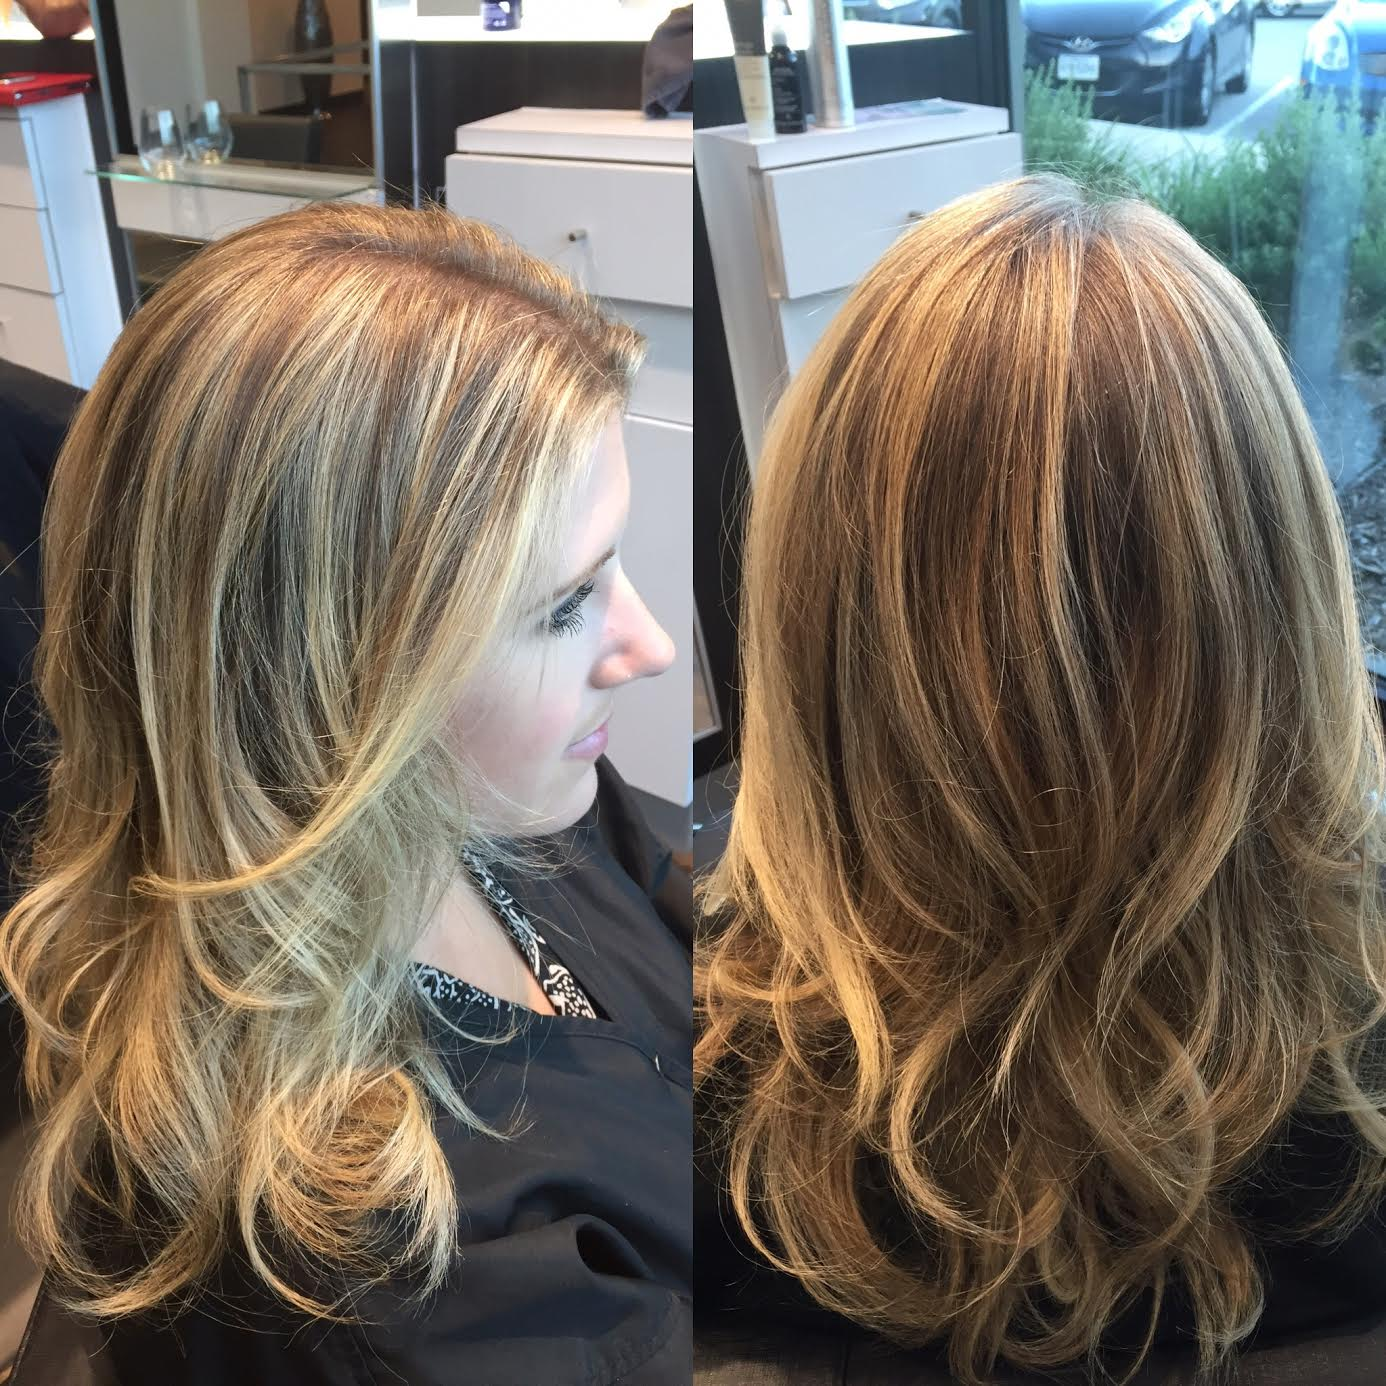 Kevin Walsh Dallas Texas Hairstylist  Highlights